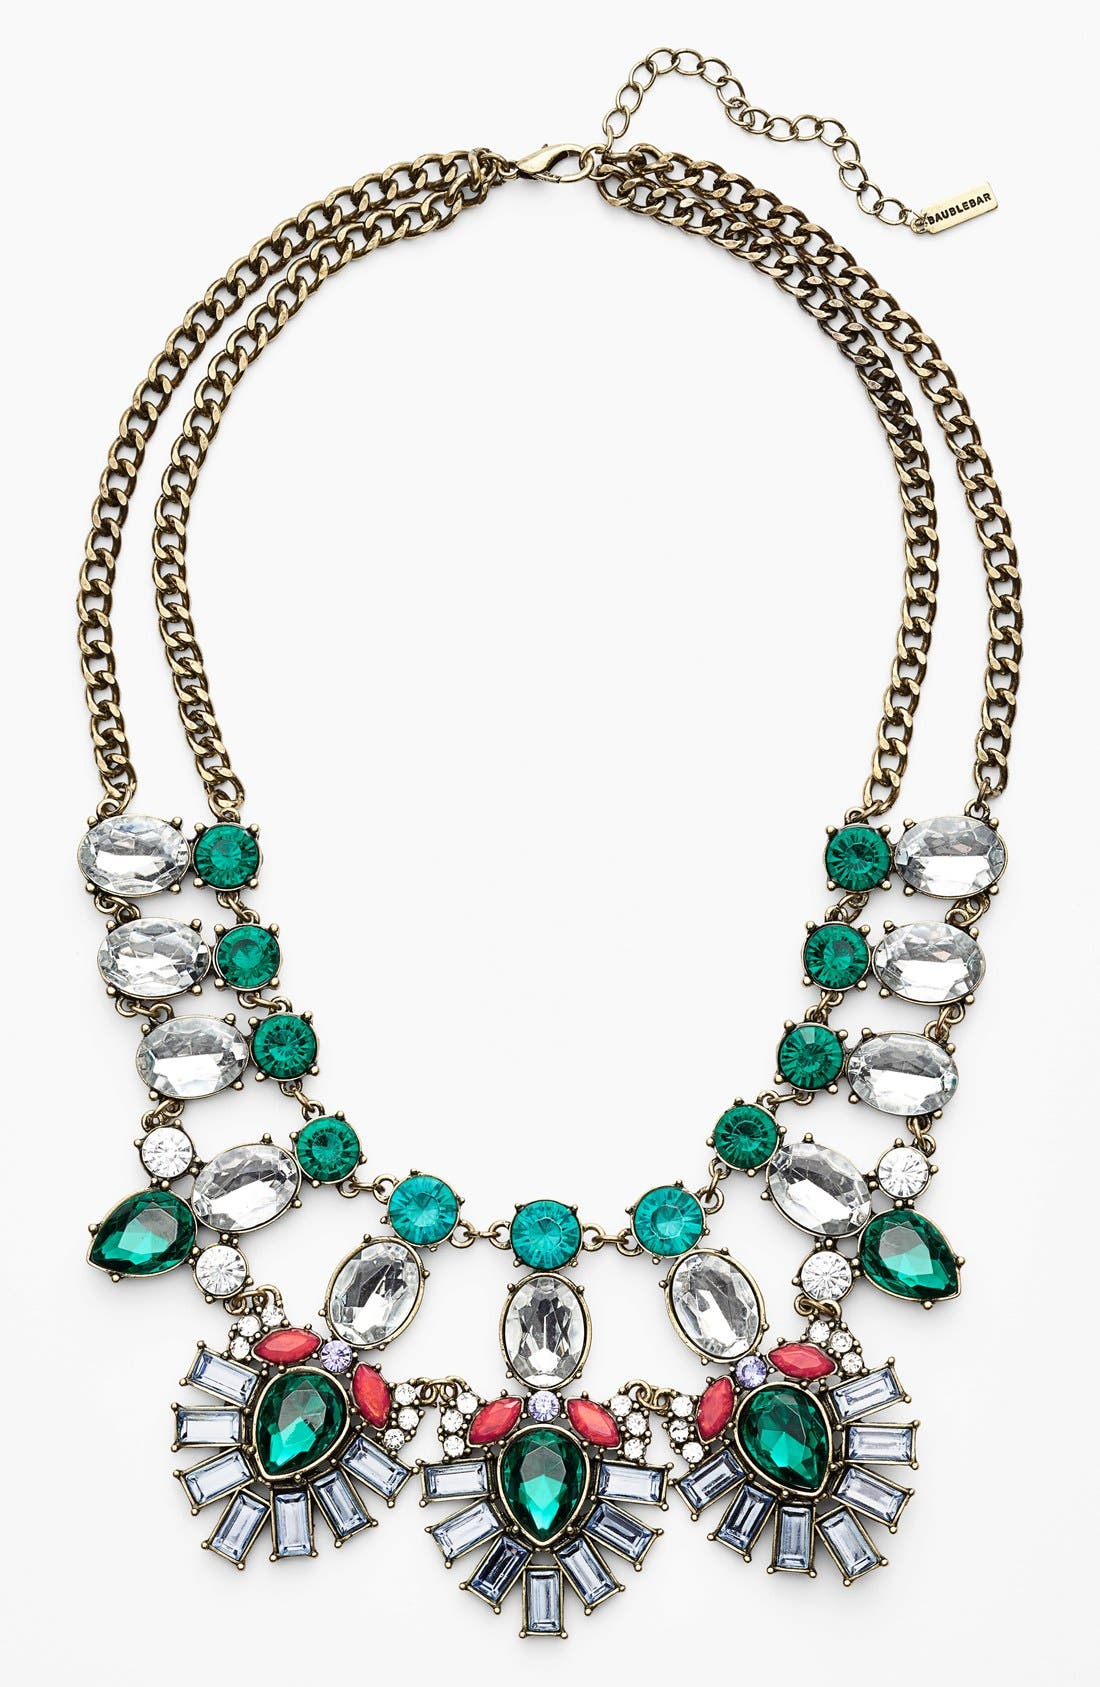 Alternate Image 1 Selected - BaubleBar 'Drama' Mixed Stone Statement Necklace (Nordstrom Exclusive)